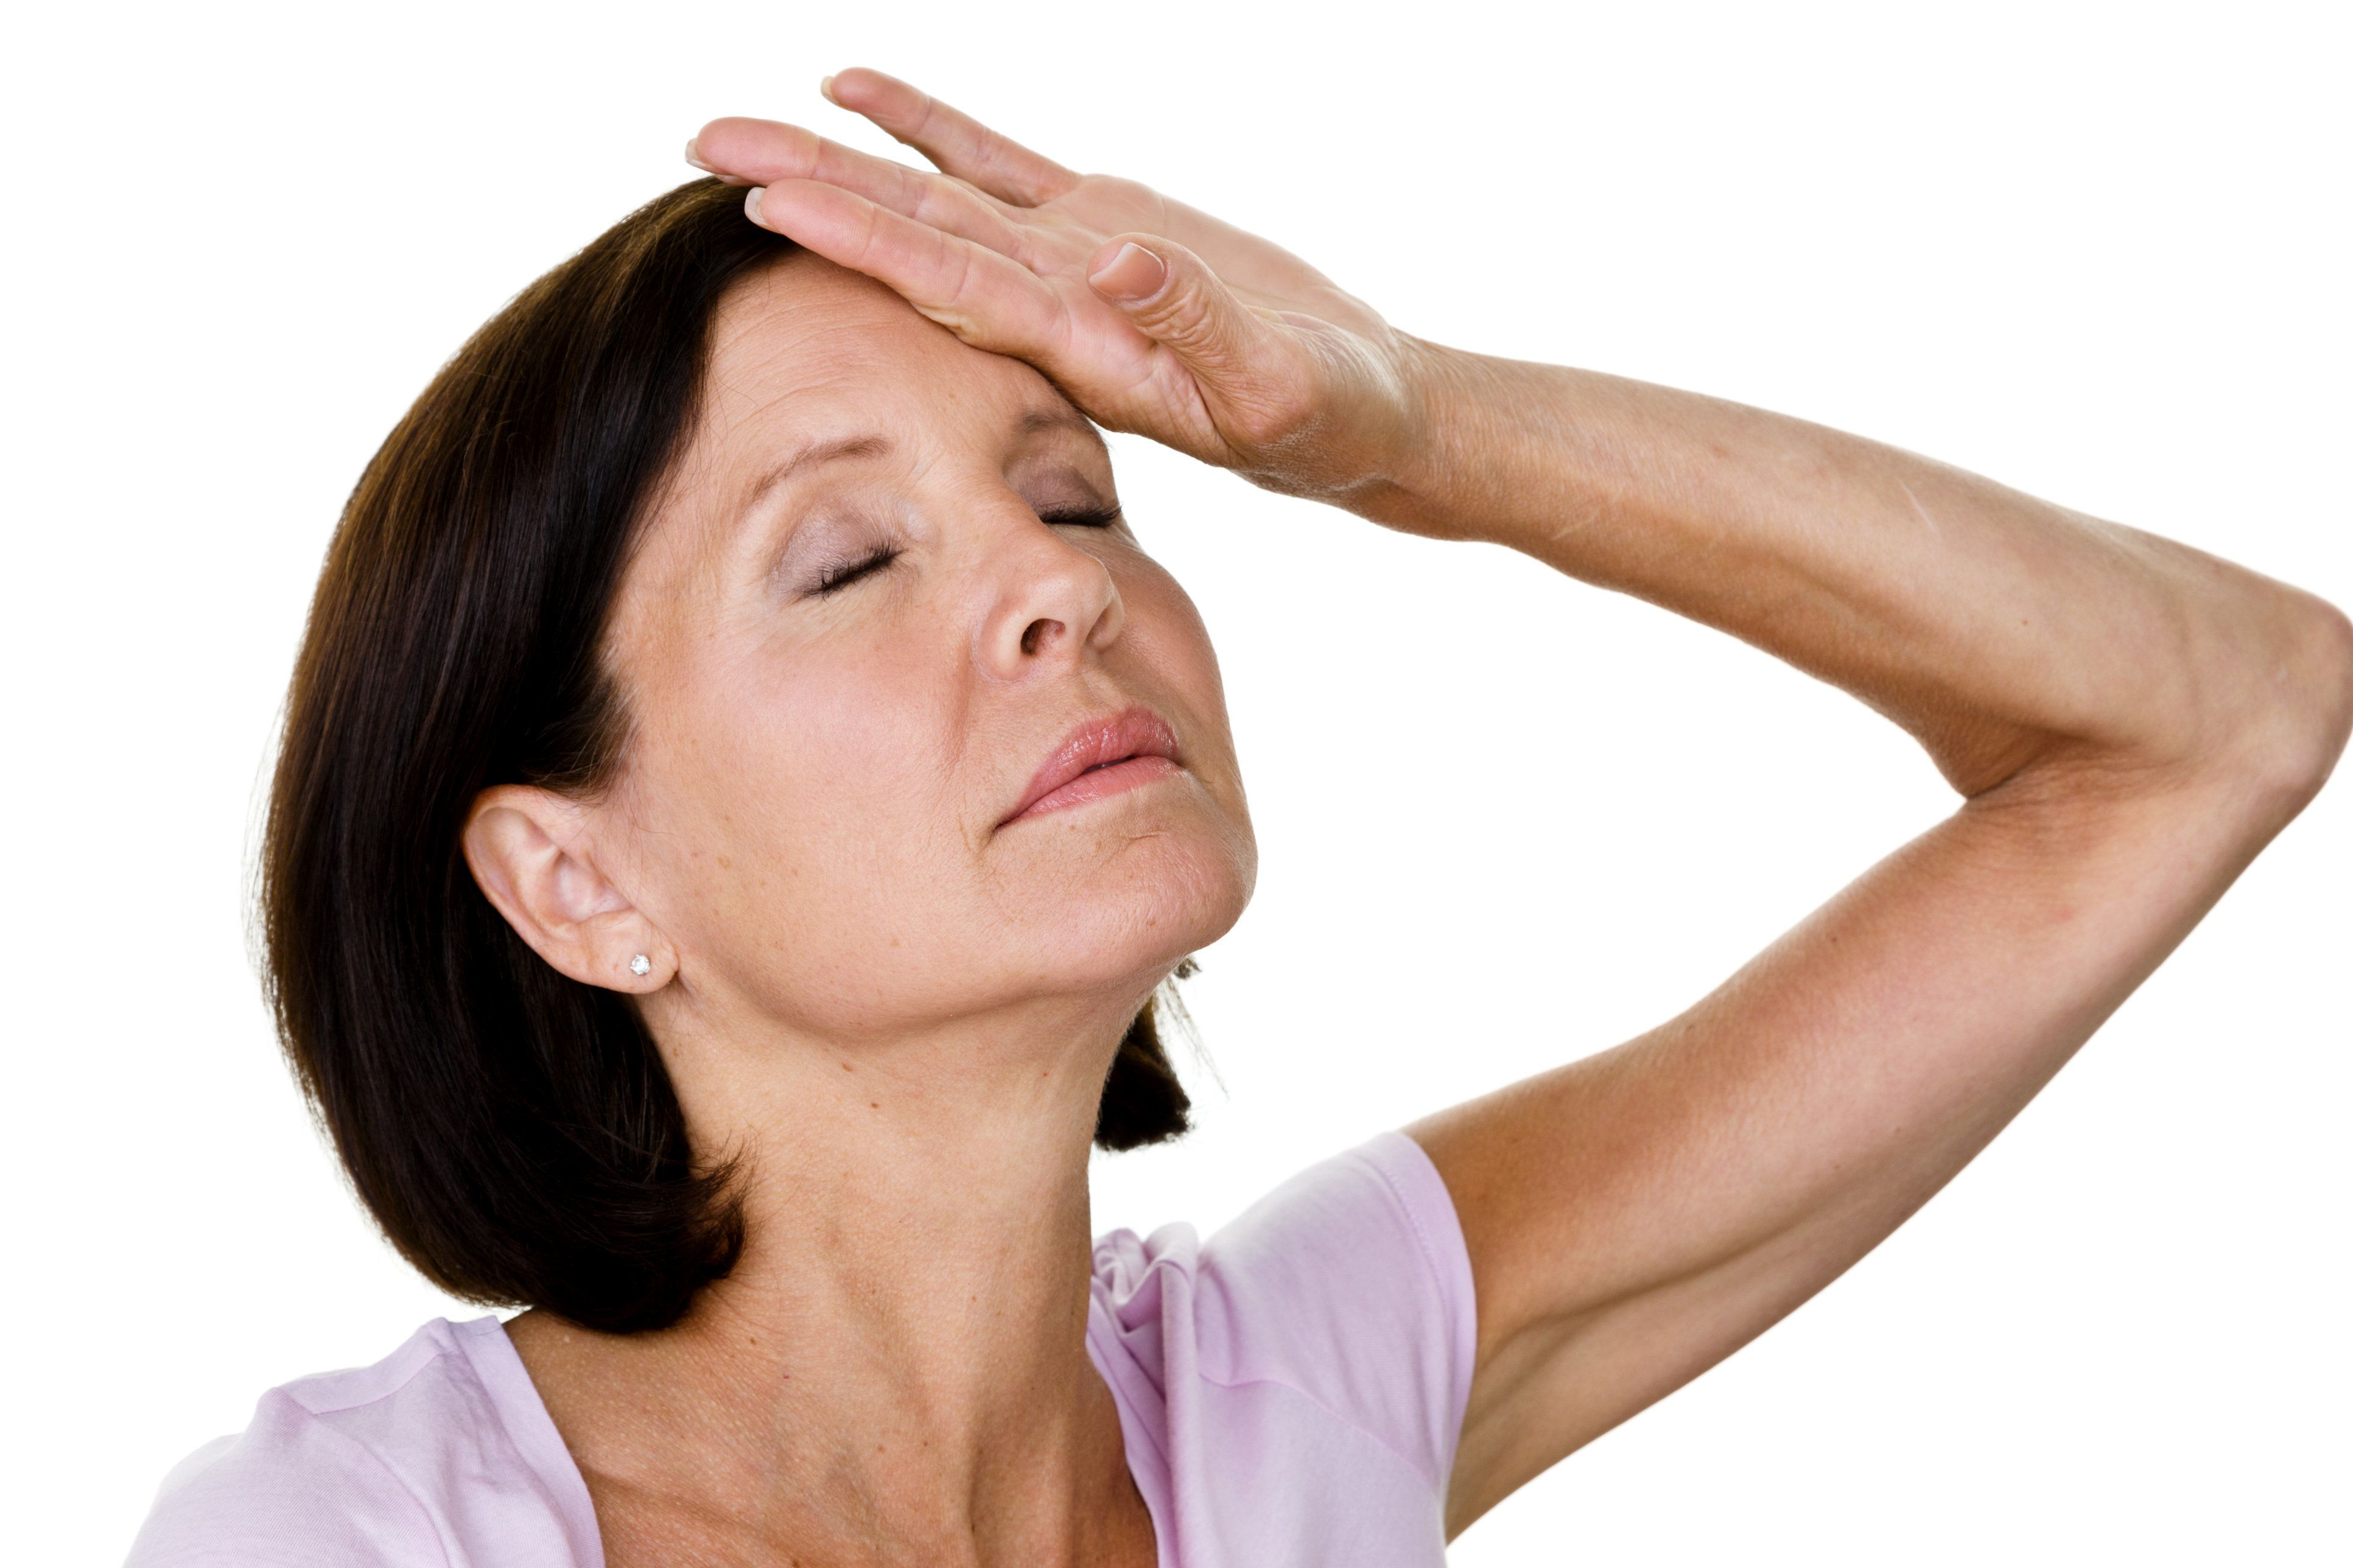 Acupuncture Eases Hot Flashes